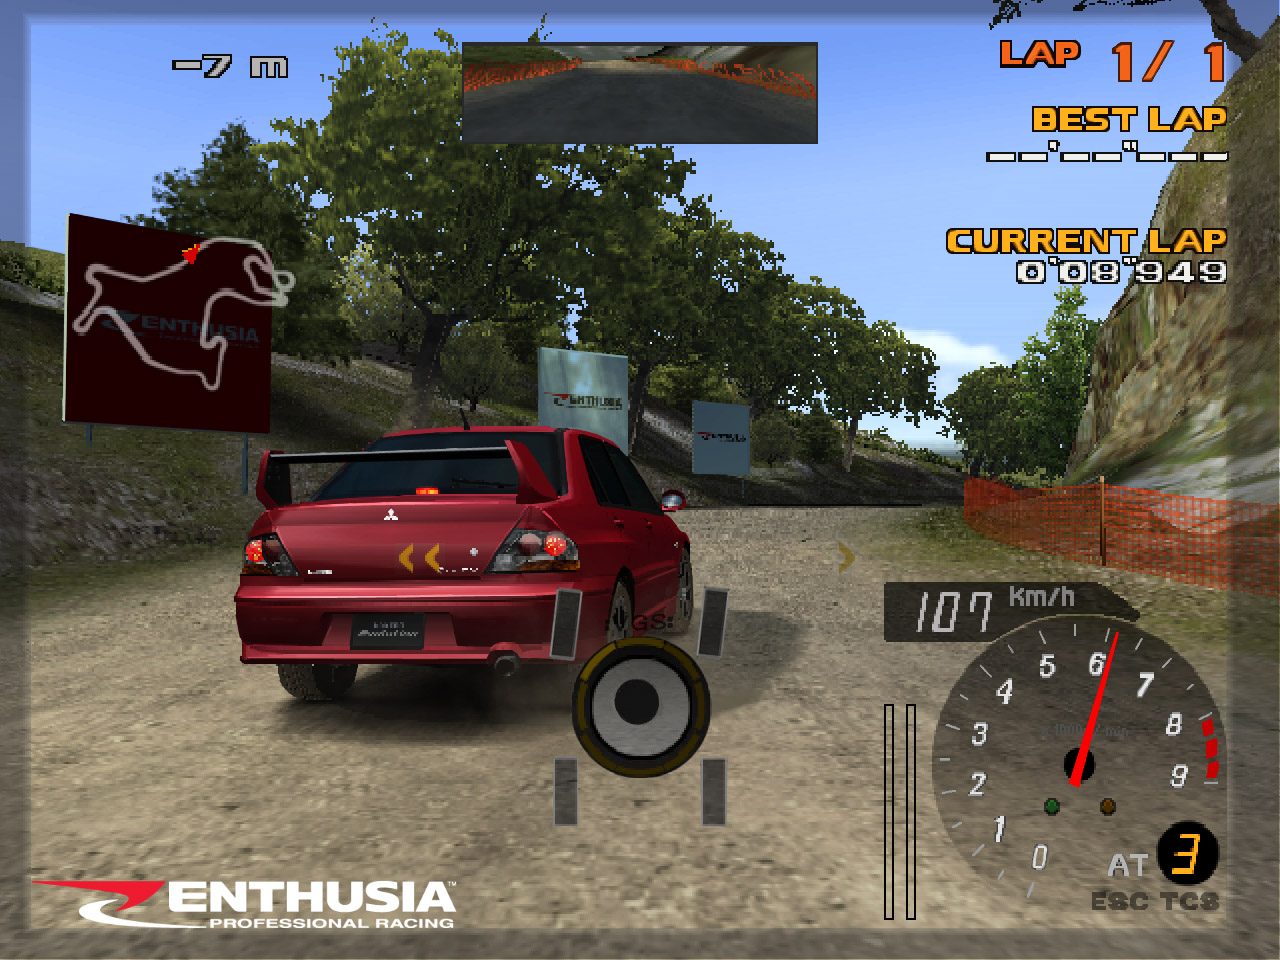 Enthusia: Professional Racing - 47605